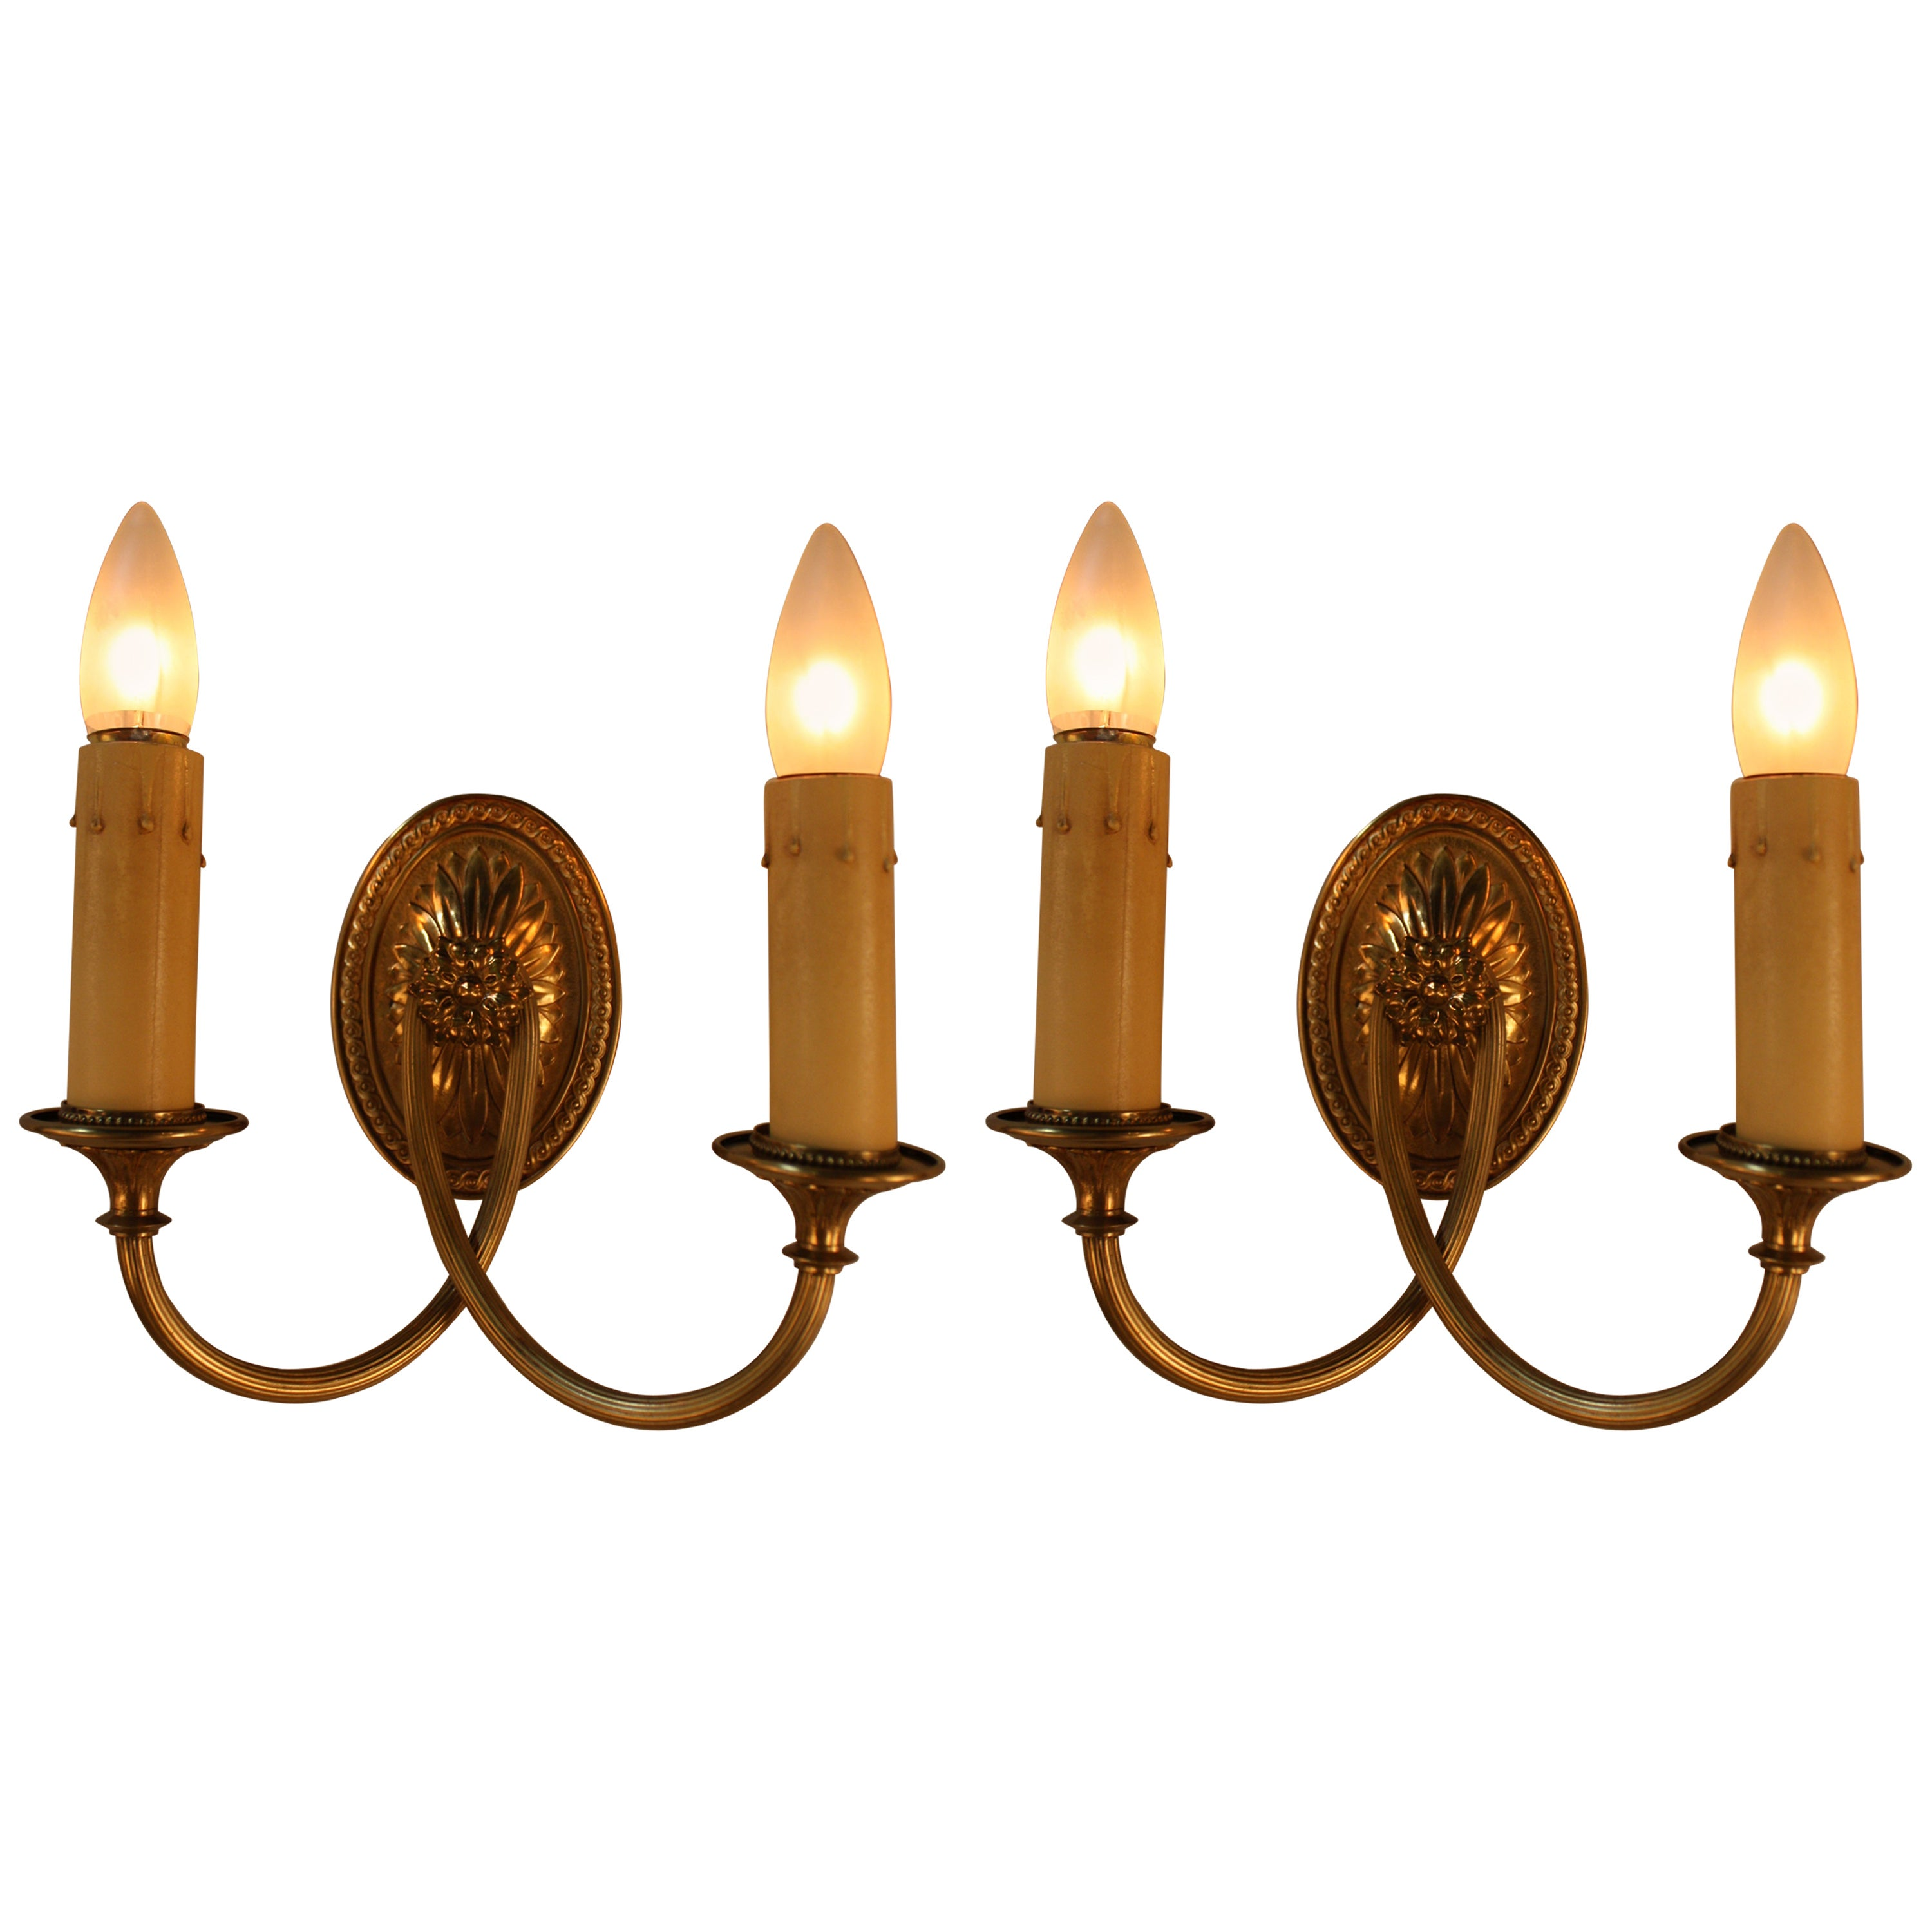 Pair of American Bronze Wall Sconces by Sterling Bronze Co